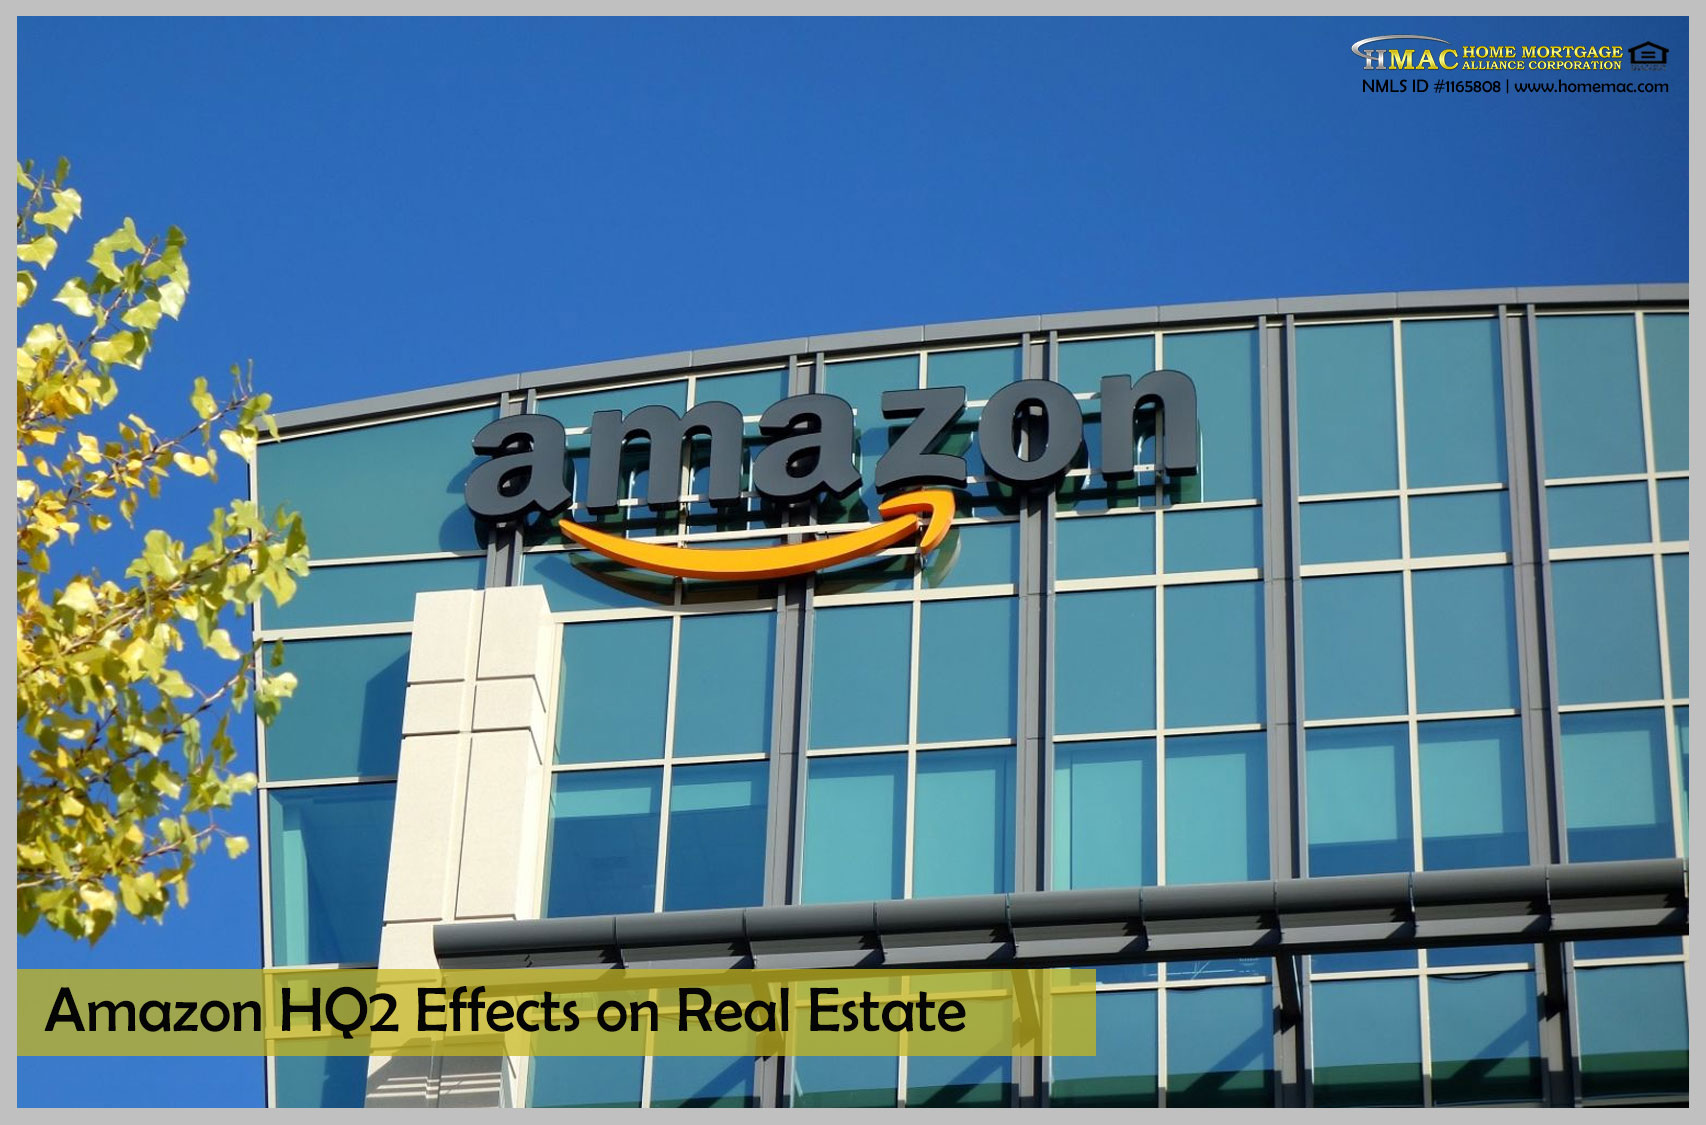 amazon hq2 effects on real estate